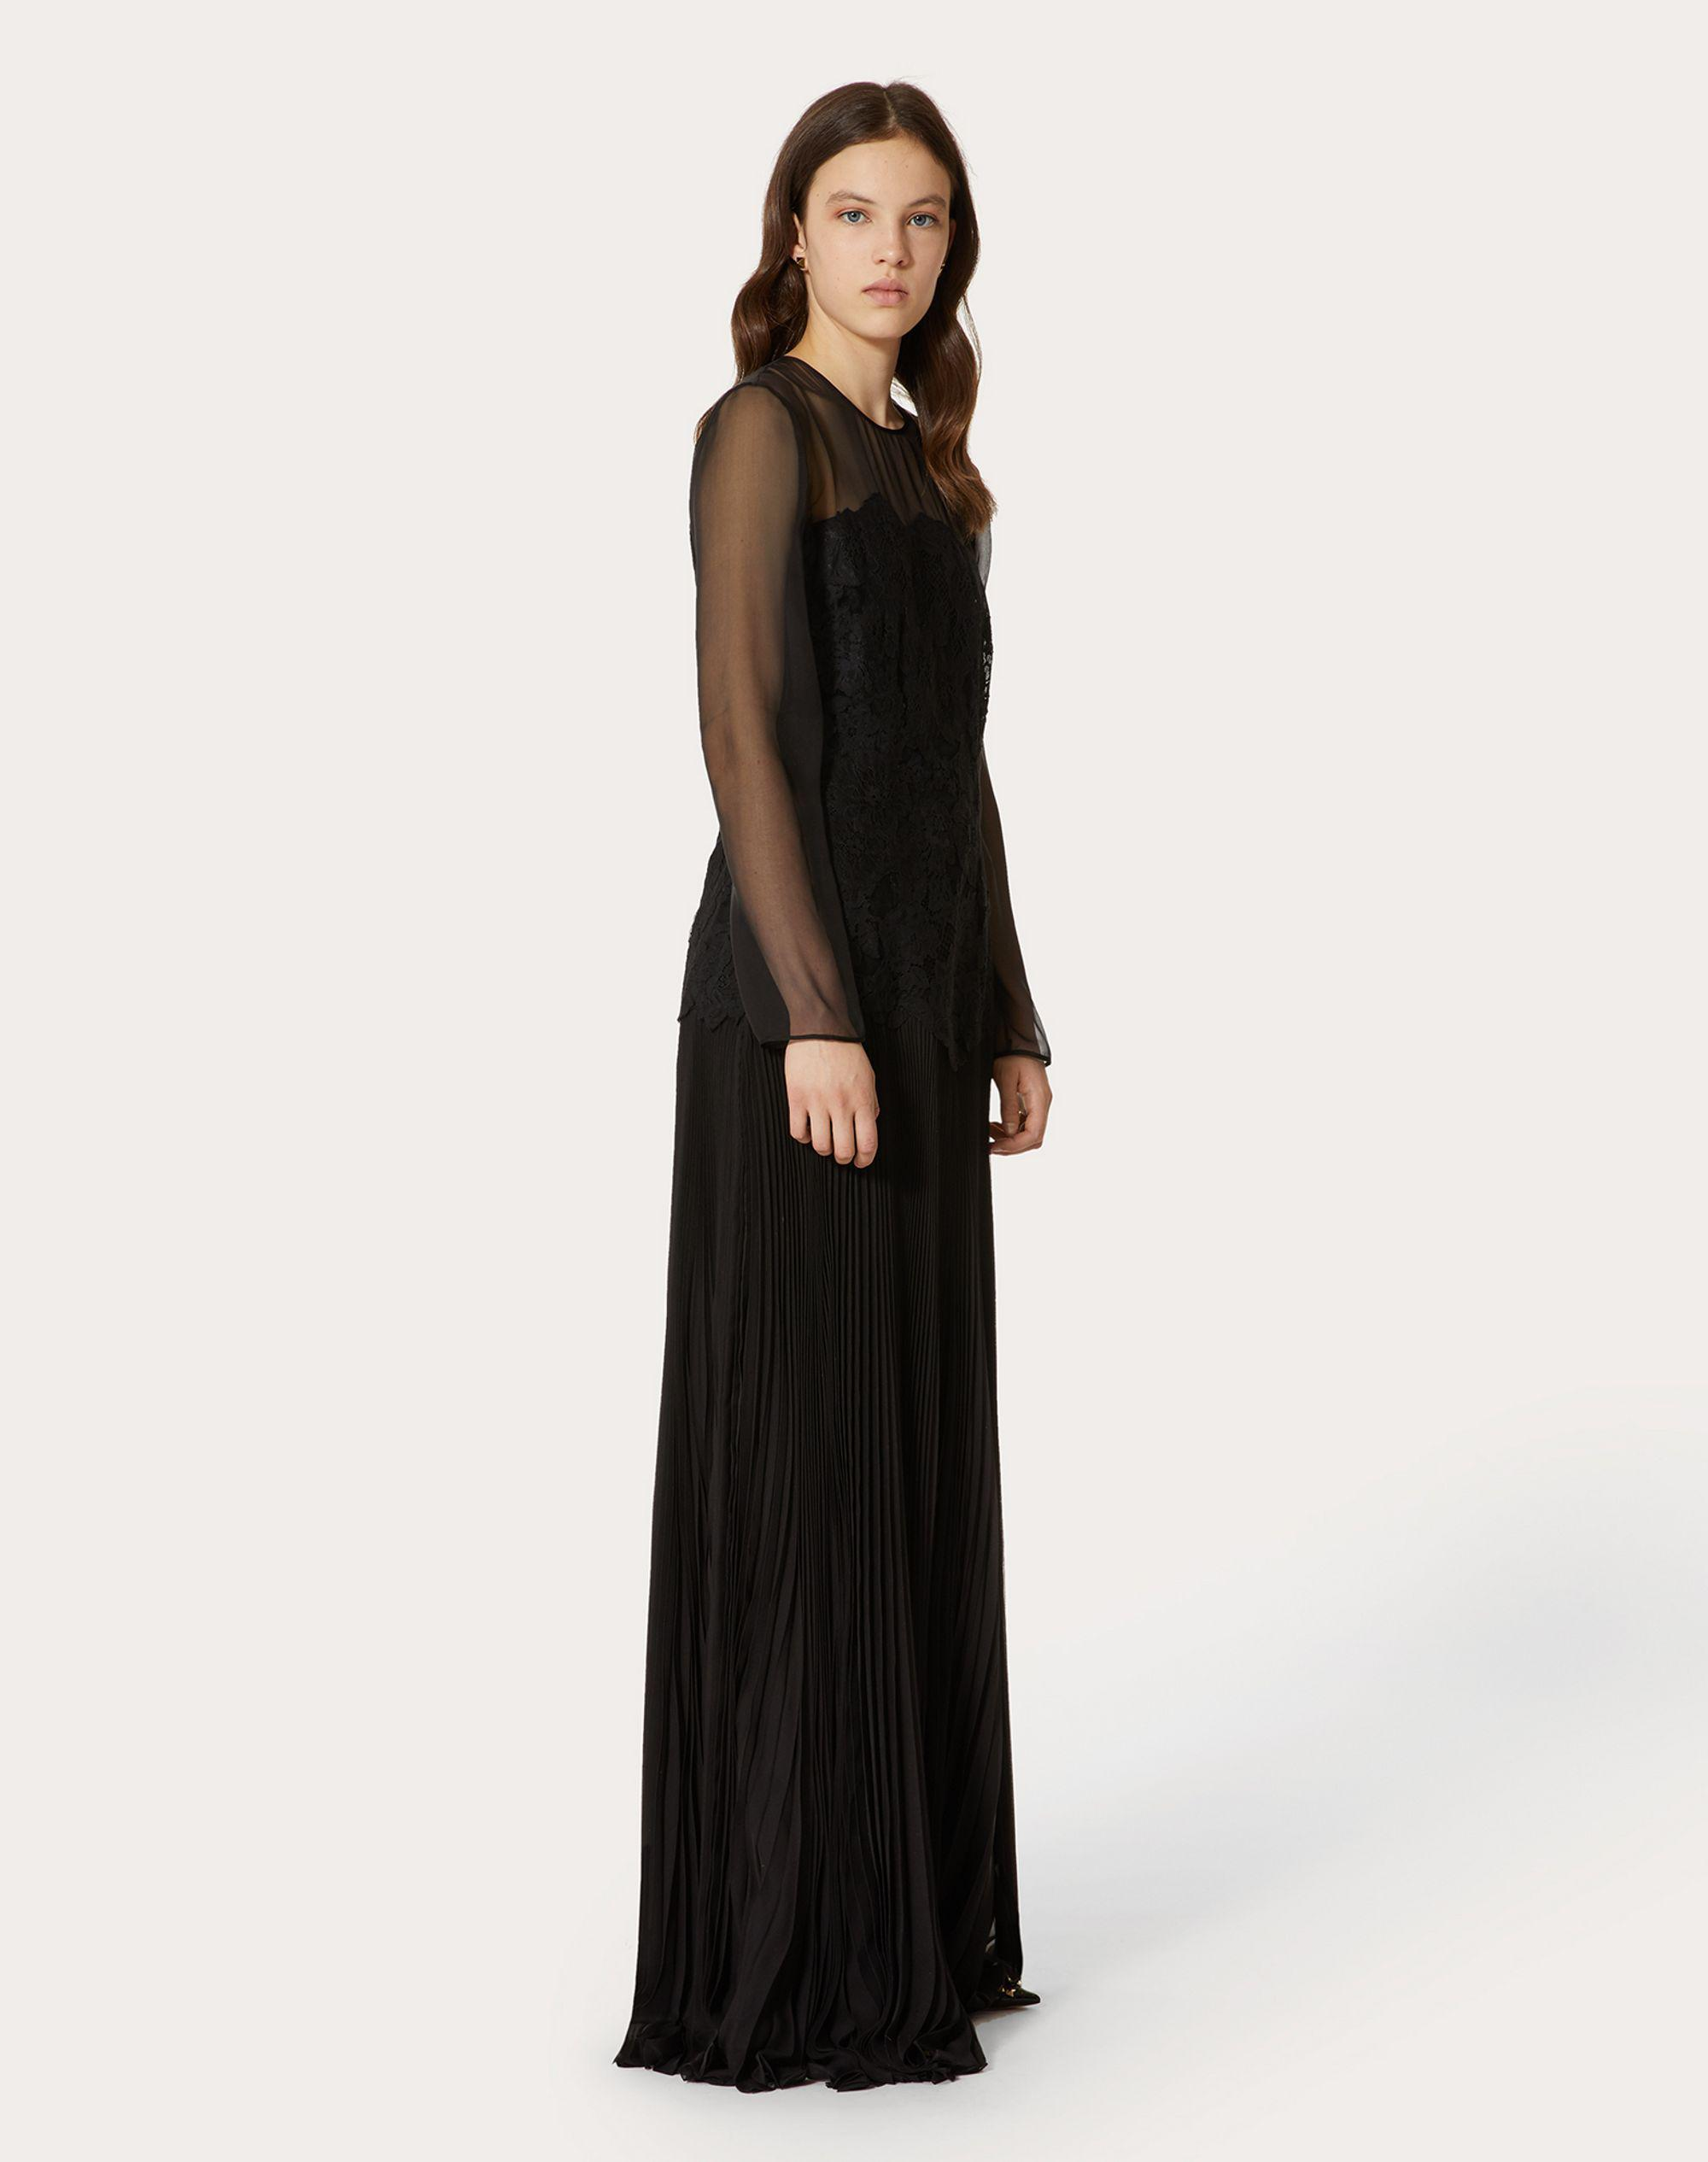 EVENING DRESS IN CHIFFON AND LACE